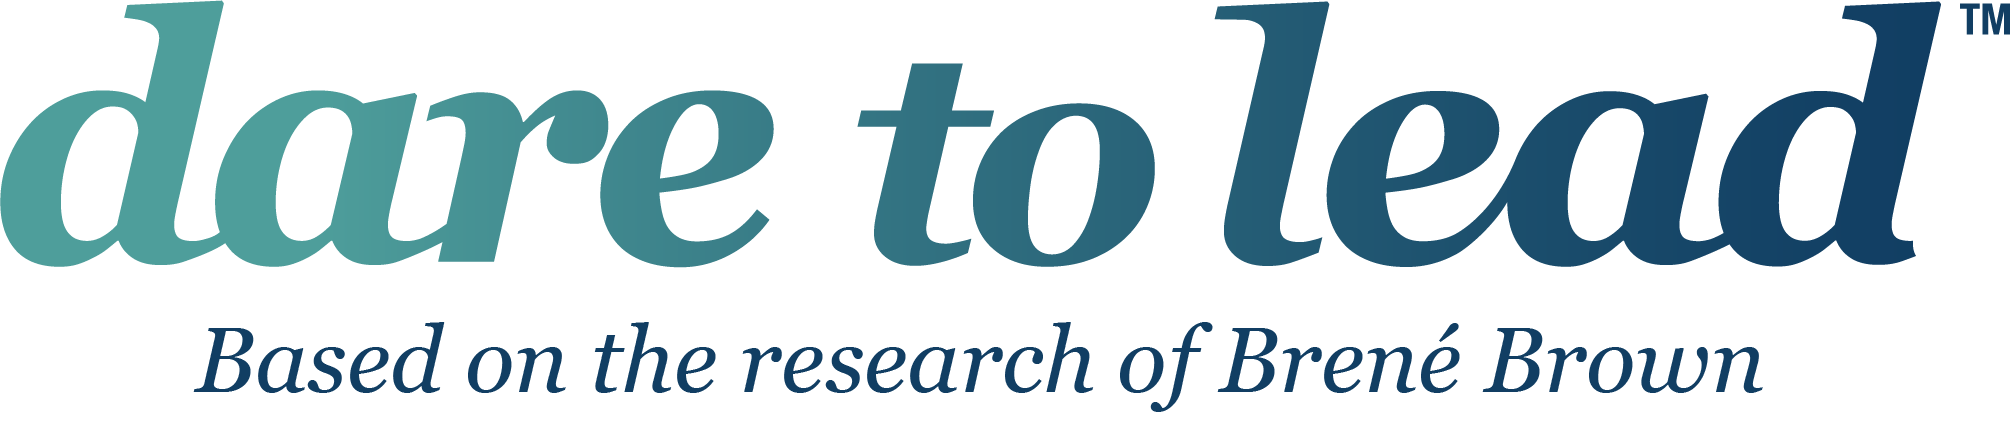 DTL__horizontal-BasedOnTheResearch-Ombre.png